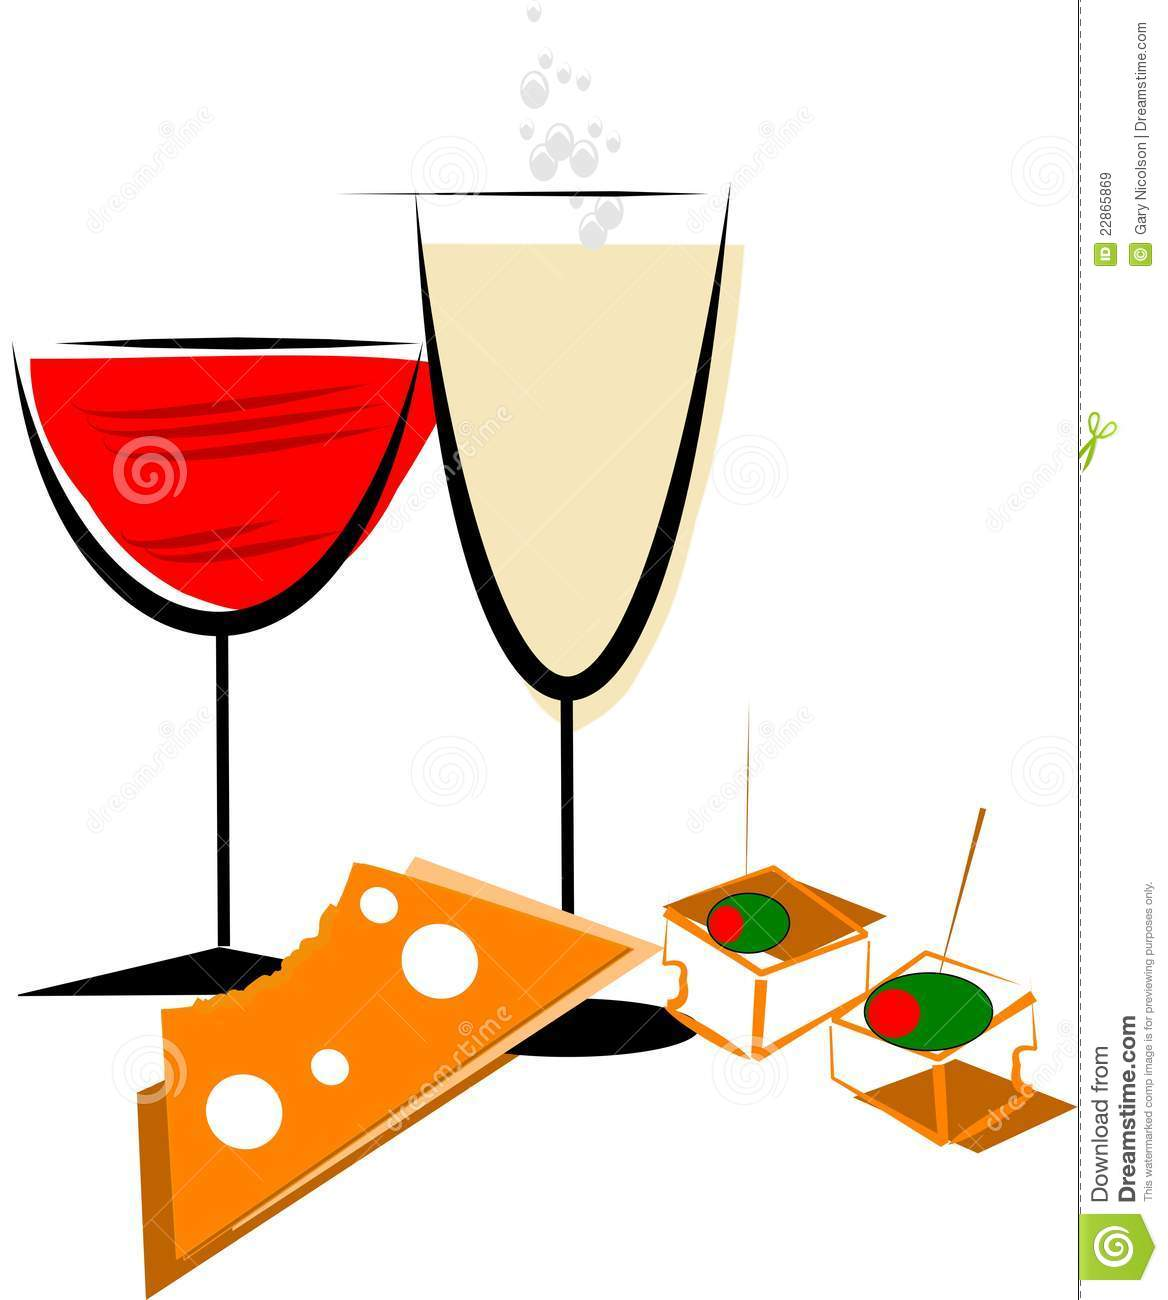 Free clipart wine and cheese on table jpg royalty free Free Clipart Wine Glasses | Free download best Free Clipart Wine ... jpg royalty free